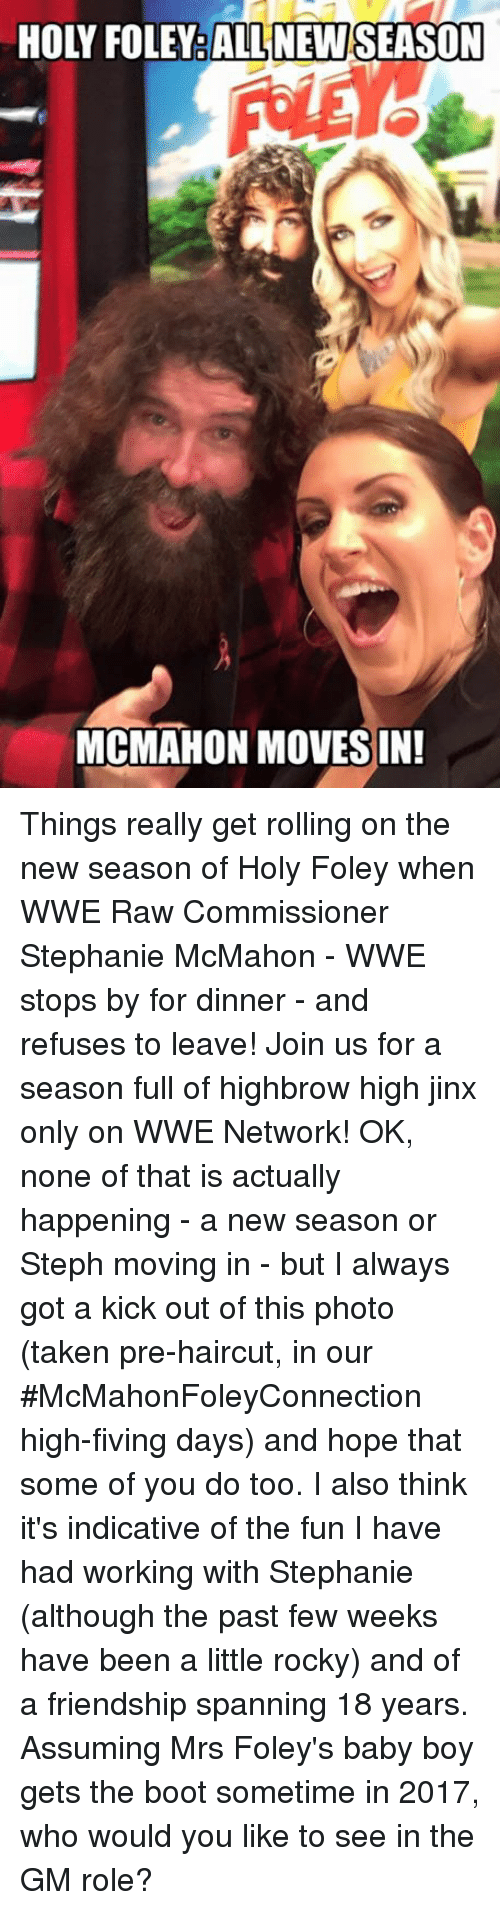 Memes, 🤖, and Jinx: HOLY FOLEY ALL NEW SEASON  MCMAHON MOVES IN! Things really get rolling on the new season of Holy Foley when WWE Raw Commissioner Stephanie McMahon - WWE stops by for dinner - and refuses to leave! Join us for a season full of highbrow high jinx only on WWE Network!  OK, none of that is actually happening - a new season or Steph moving in - but I always got a kick out of this photo (taken pre-haircut, in our #McMahonFoleyConnection high-fiving days) and hope that some of you do too. I also think it's indicative of the fun I have had working with Stephanie (although the past few weeks have been a little rocky) and of a friendship spanning 18 years.   Assuming Mrs Foley's baby boy gets the boot sometime in 2017, who would you like to see in the GM role?